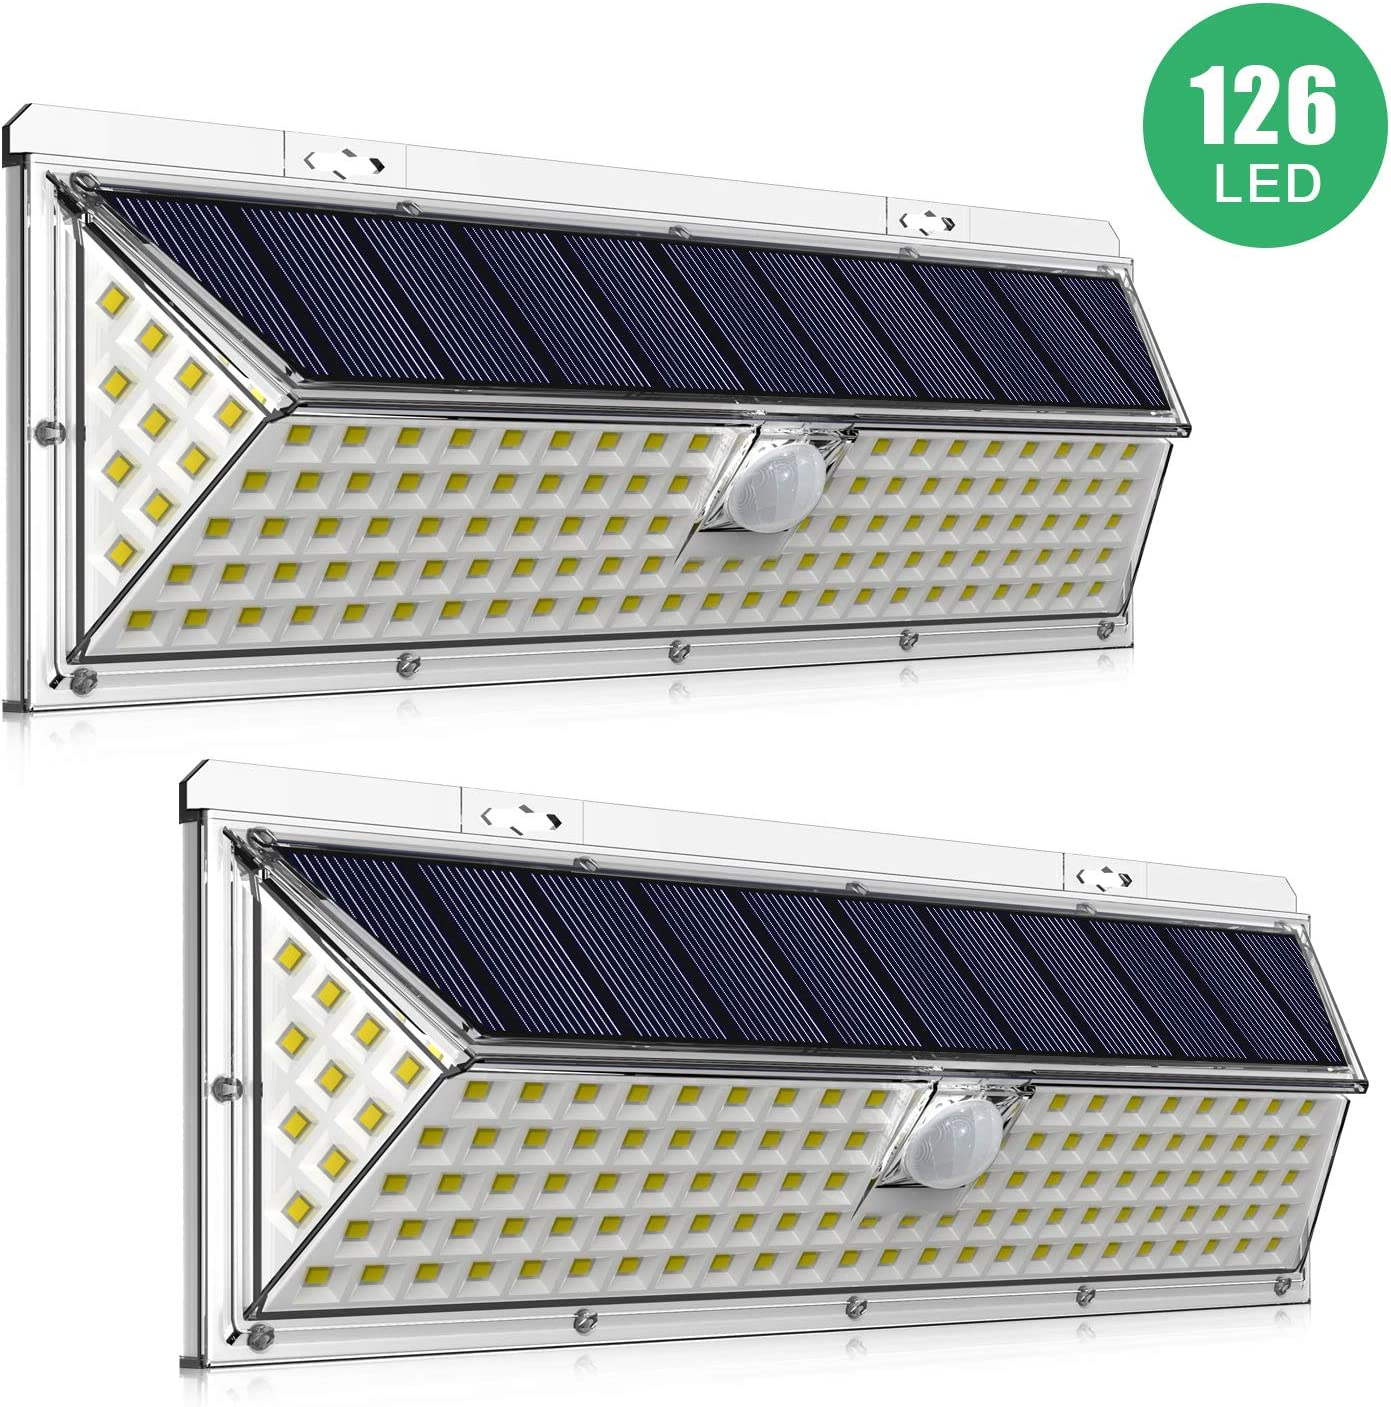 IDESION Solar Light Outdoor, 126 LEDs Solar Lights IP65 Waterproof Motion Sensor Security Wall Lights with 270 Wide Angle for Front Door Yard Garage Porch Step Stair Garden Pathway Patio 2 Pack